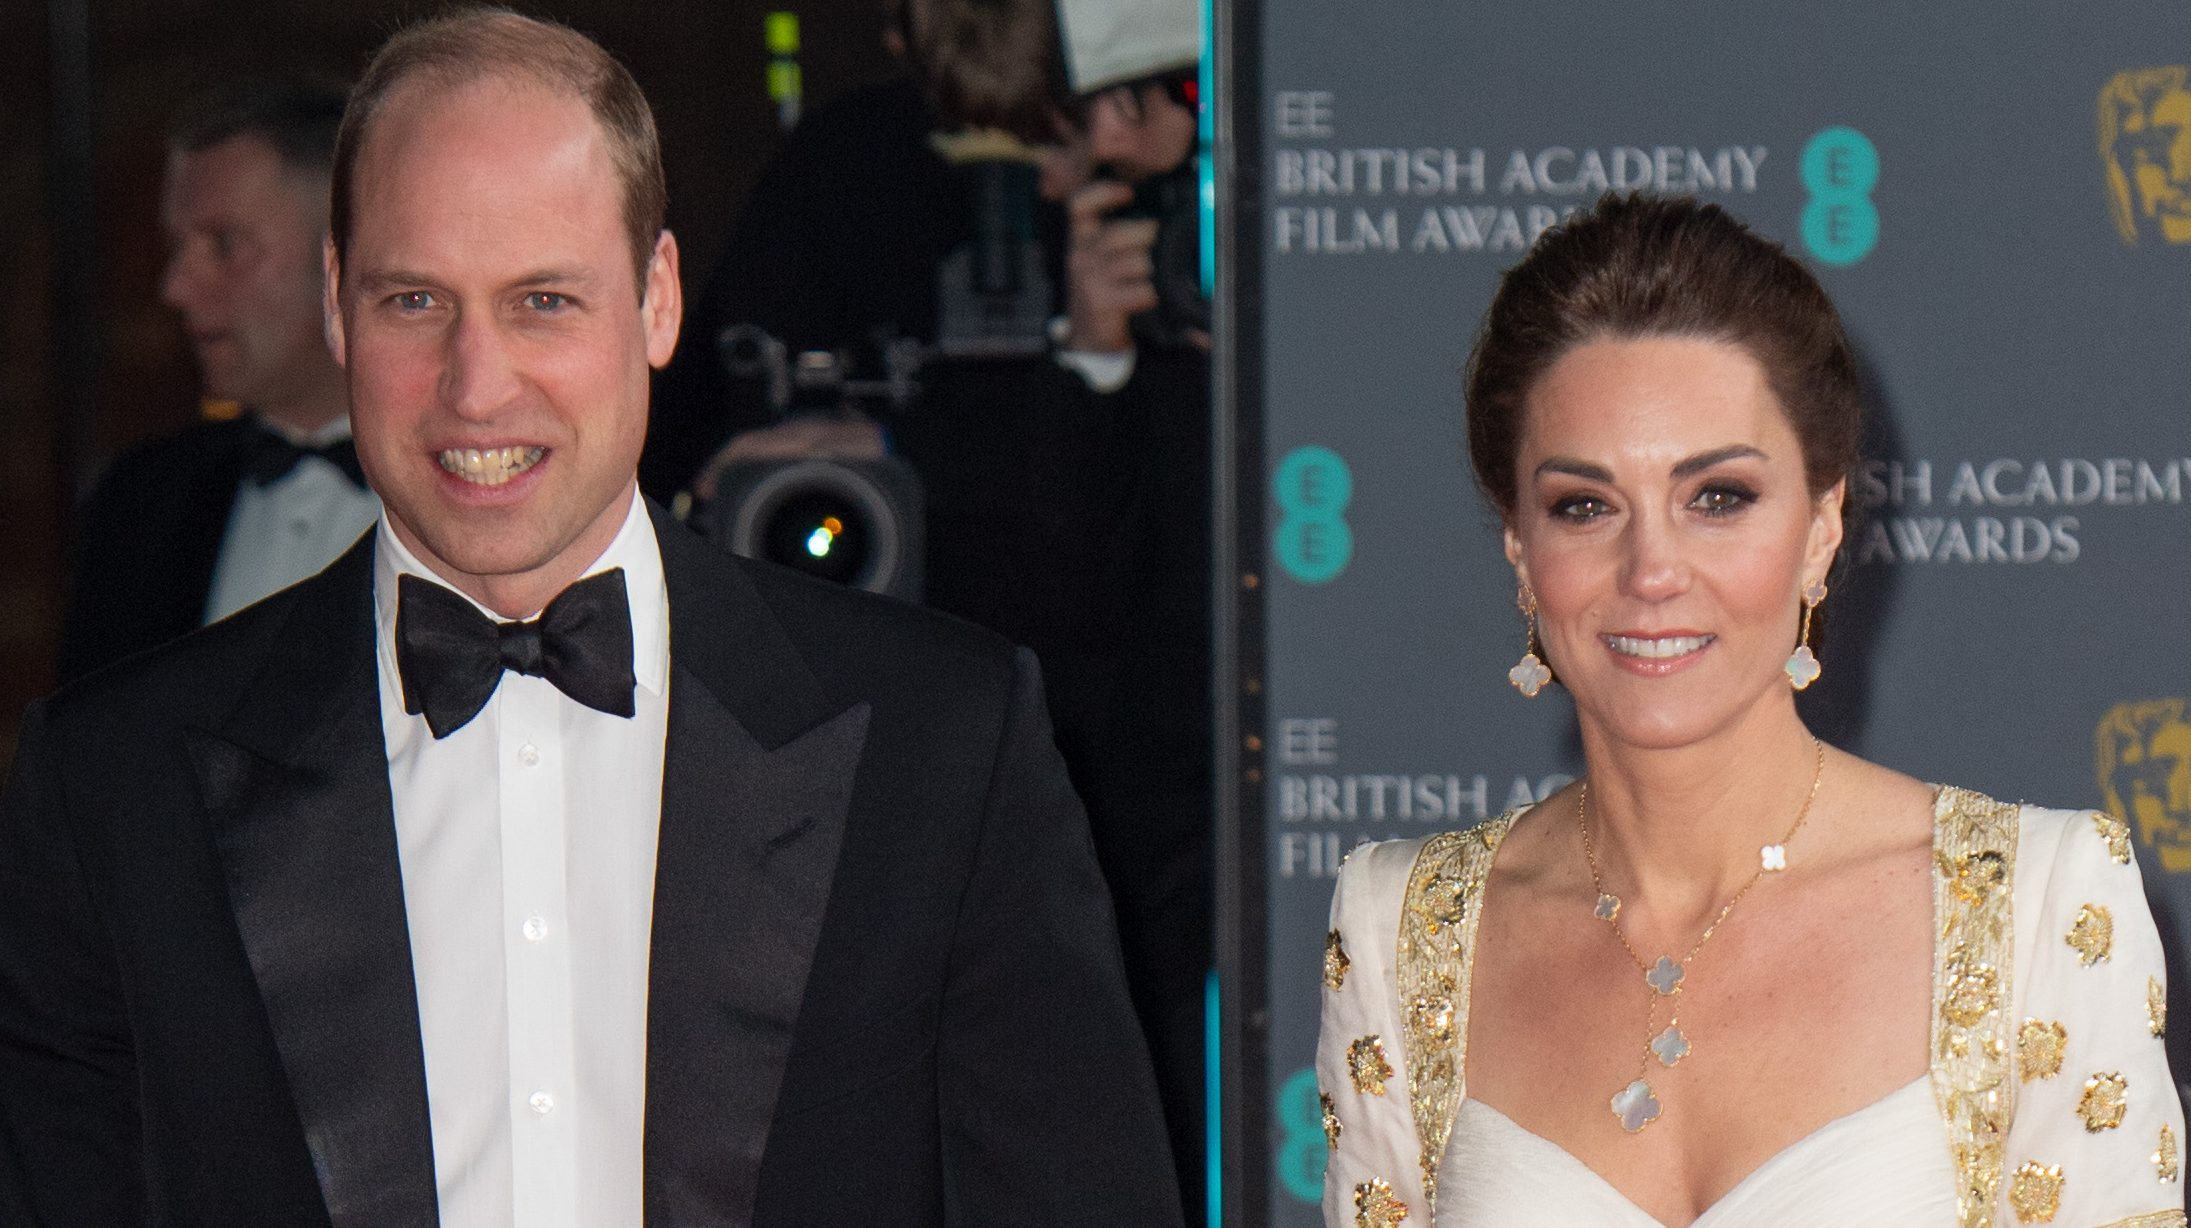 The Duke and Duchess of Cambridge laugh off awkward Harry and Meghan jibe at the BAFTAs